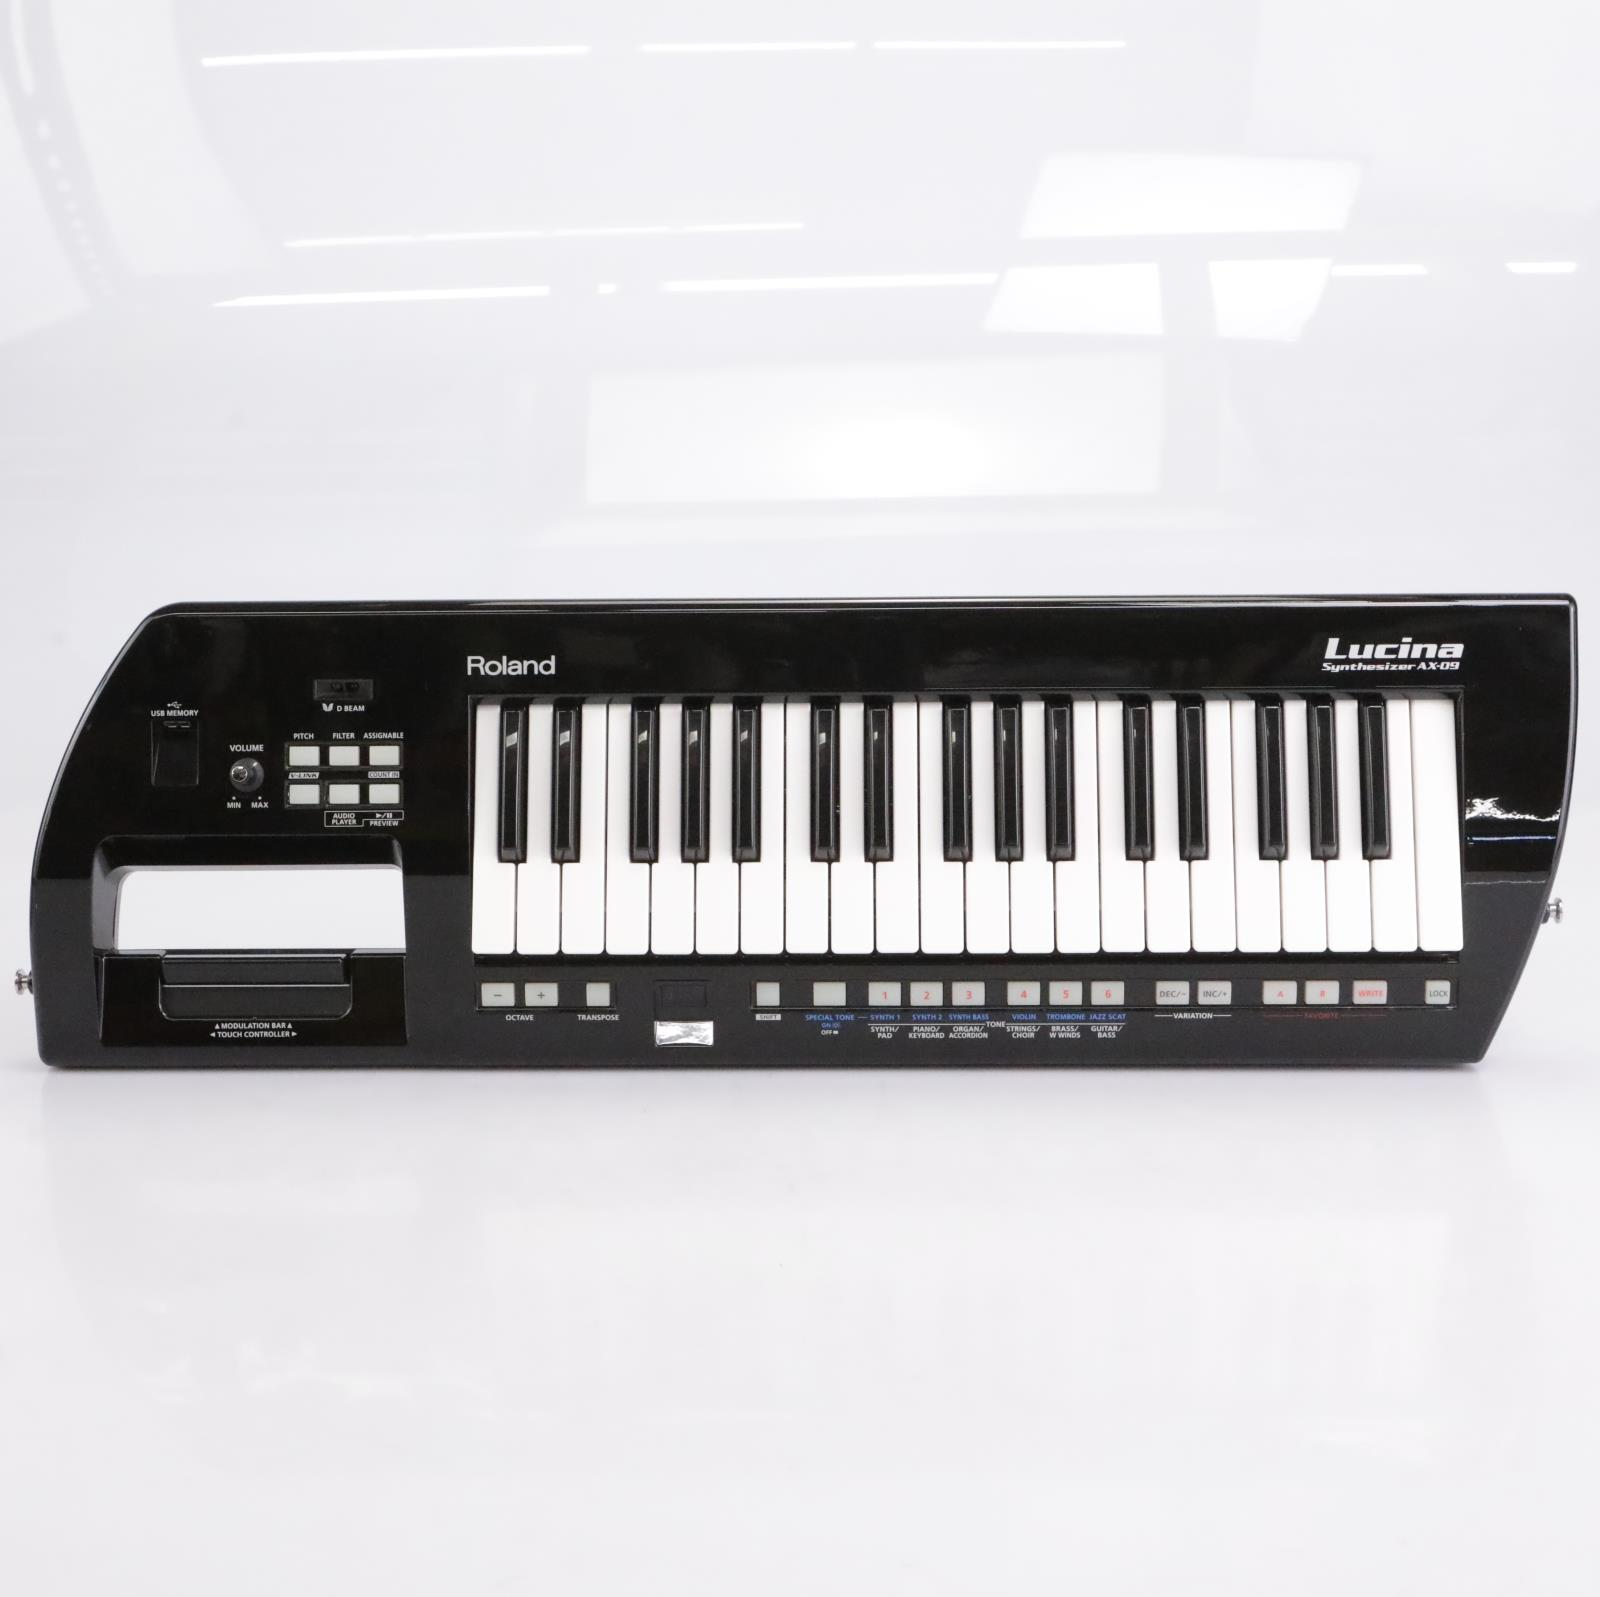 Roland Lucina AX-09 37-Note Keytar Synthesizer #43432